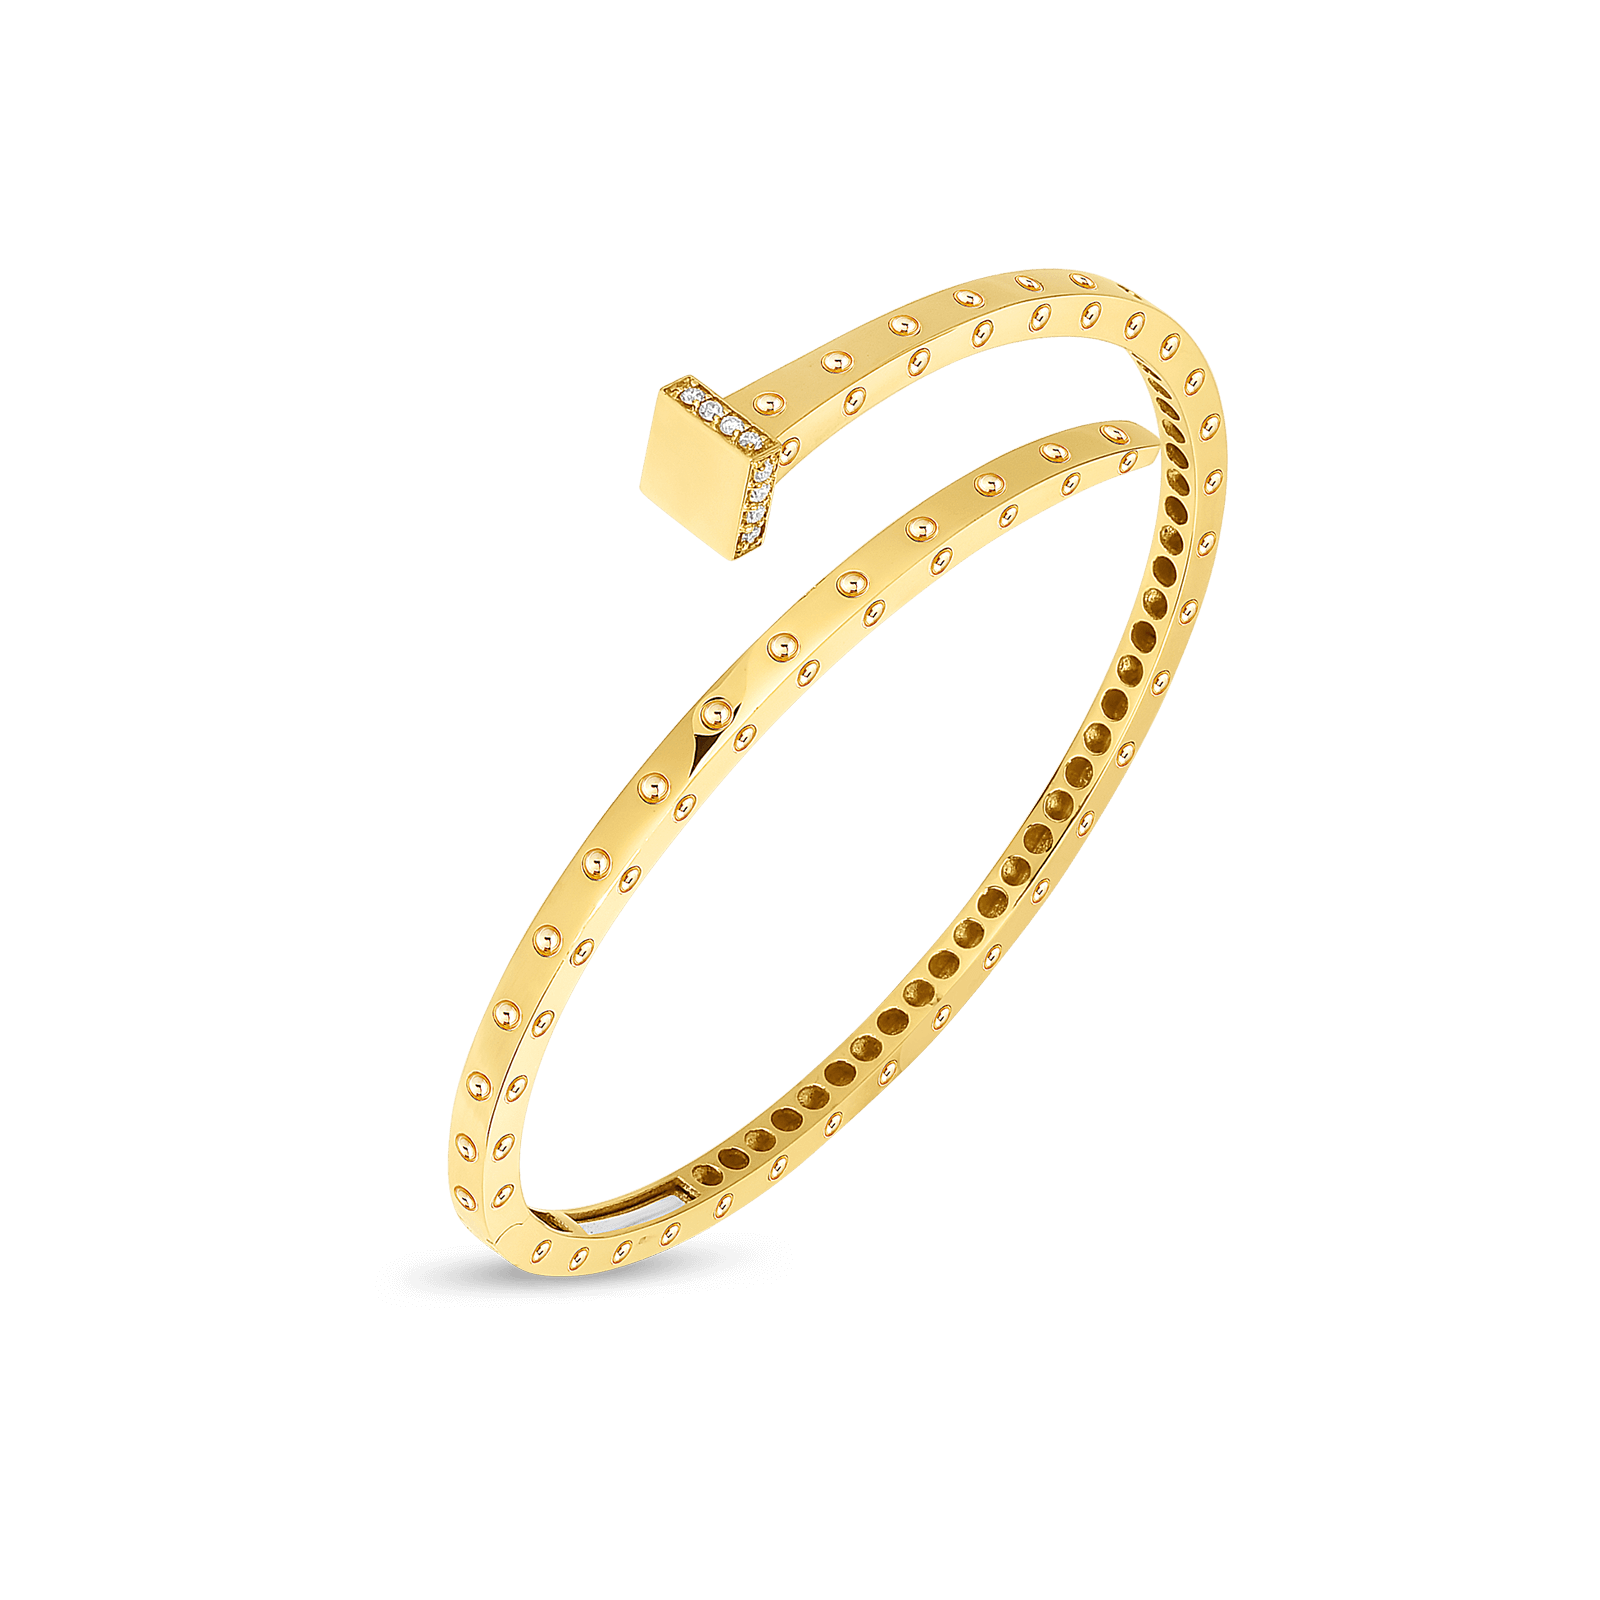 goldheart jewellery bangle bangles gold bracelet type eboutique mode fine